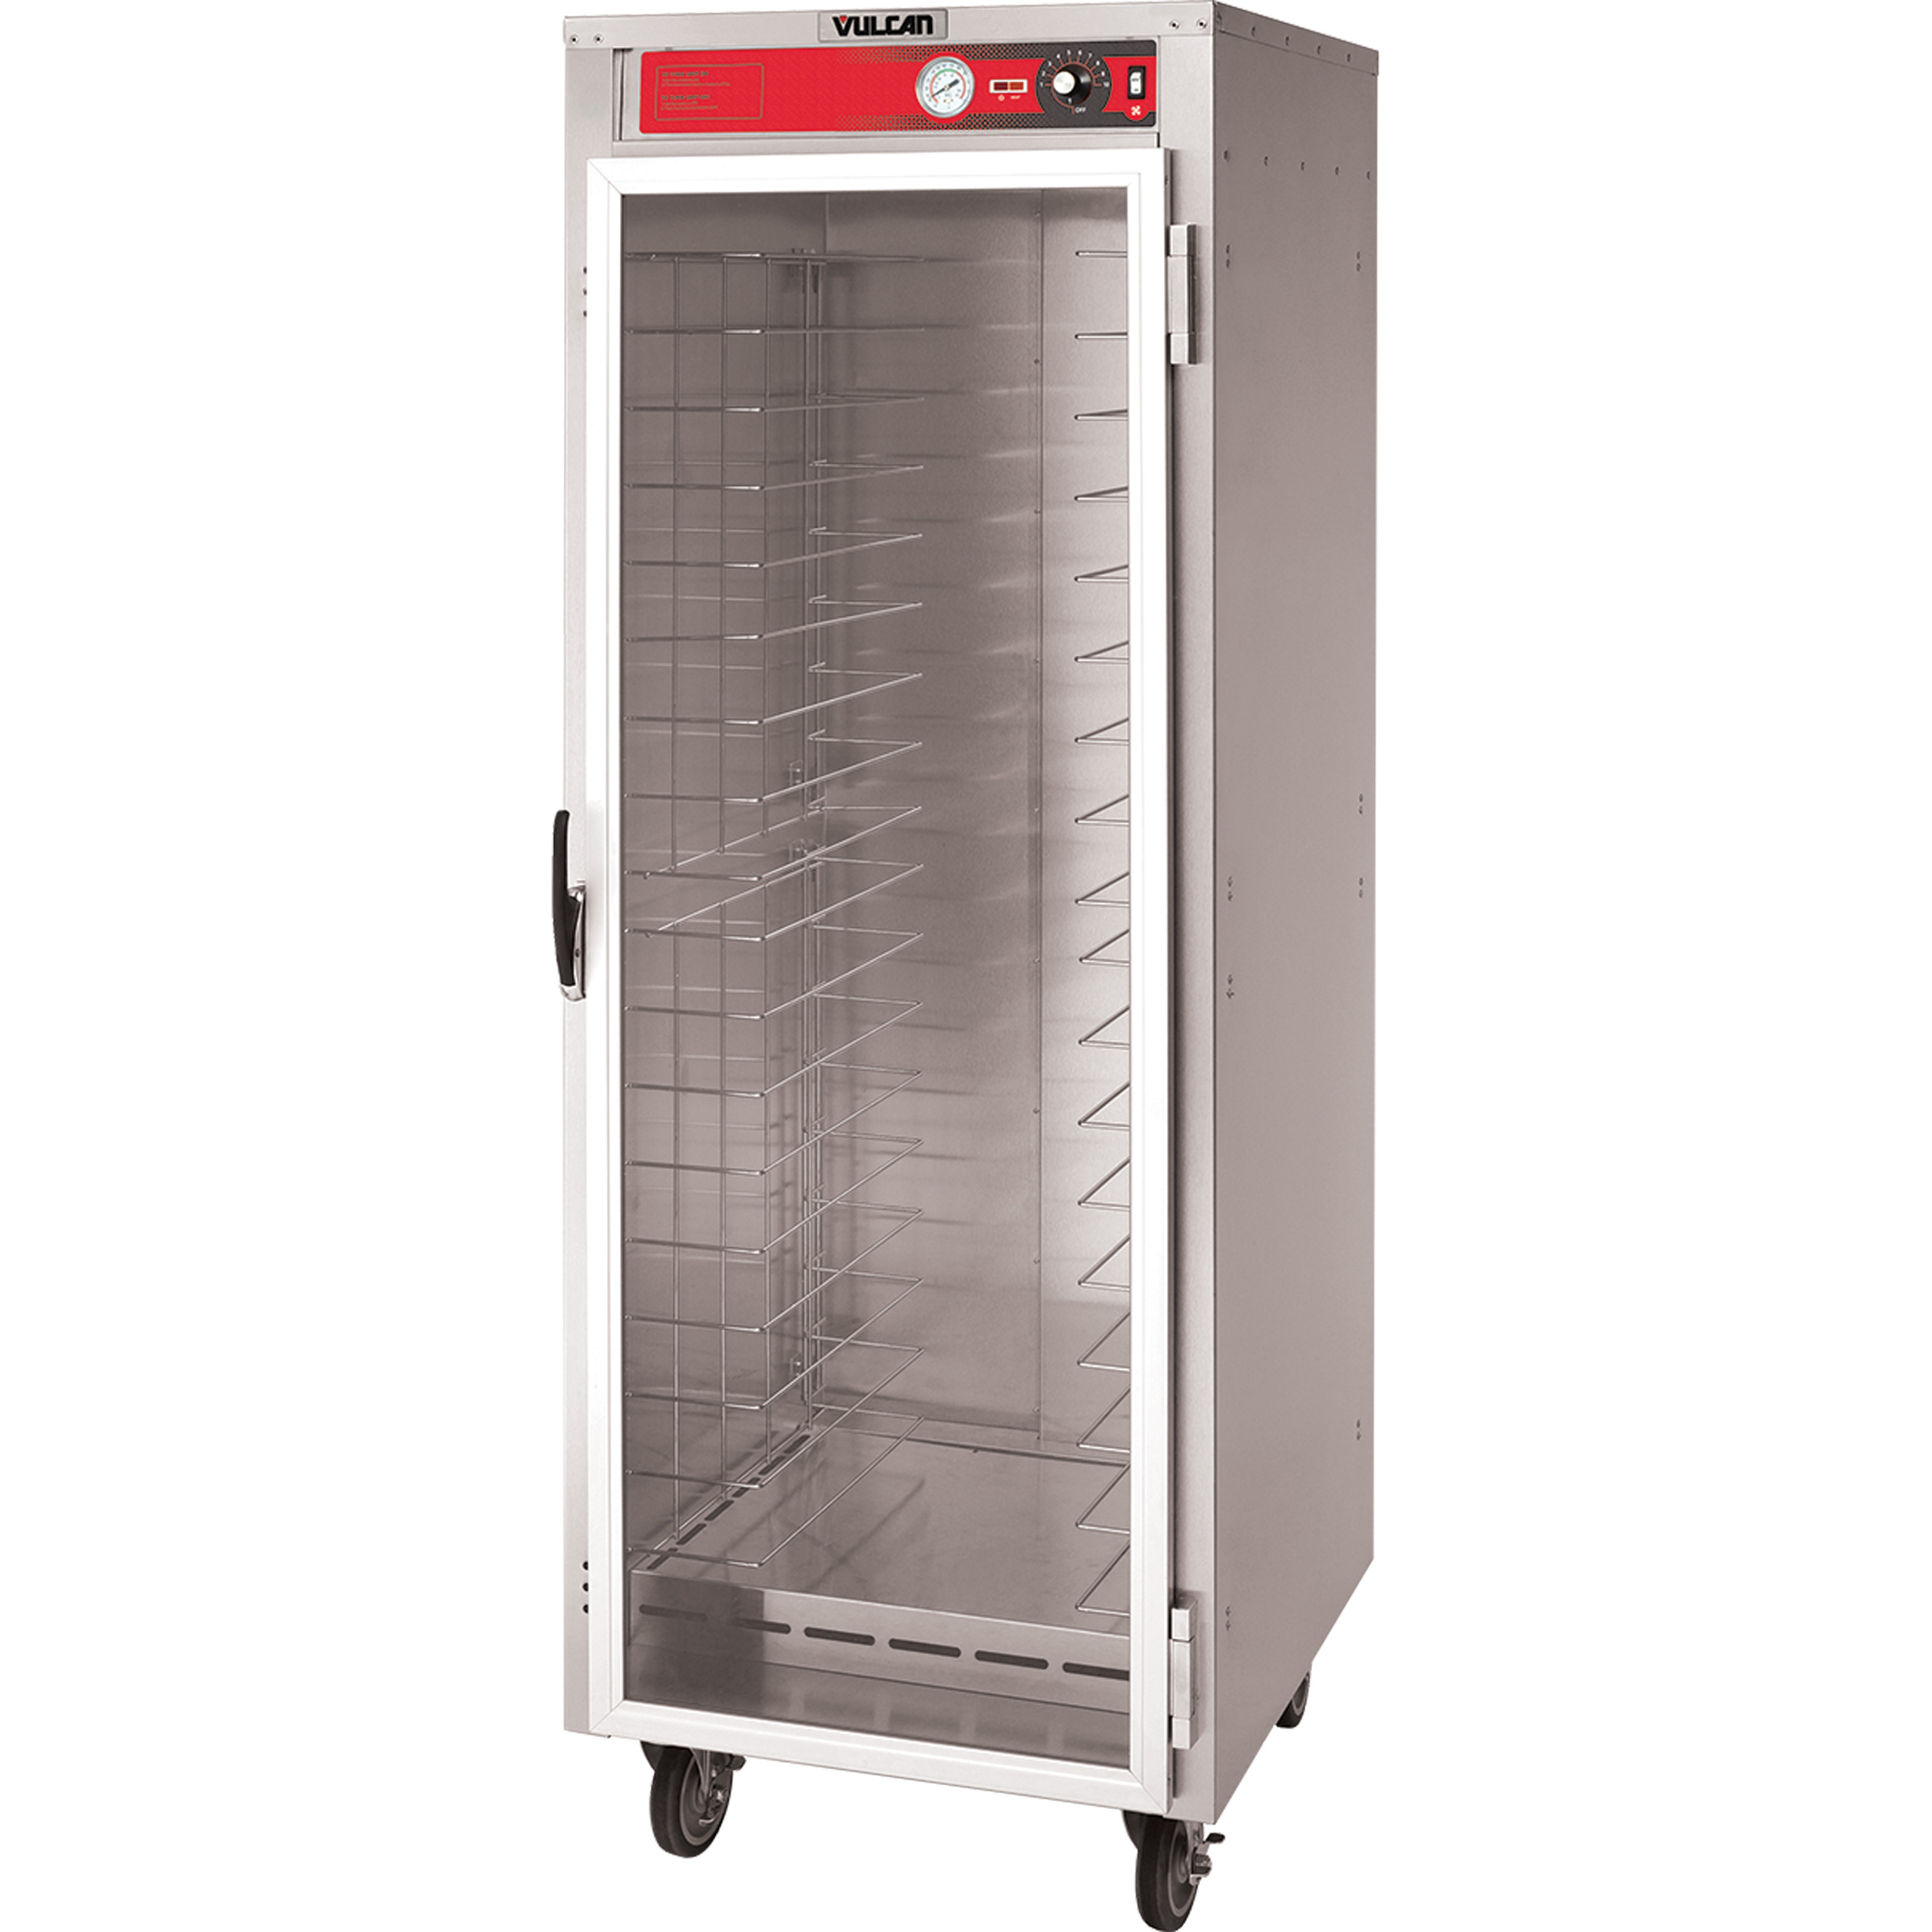 Vulcan VHFA18-1M3PN heated cabinet, mobile